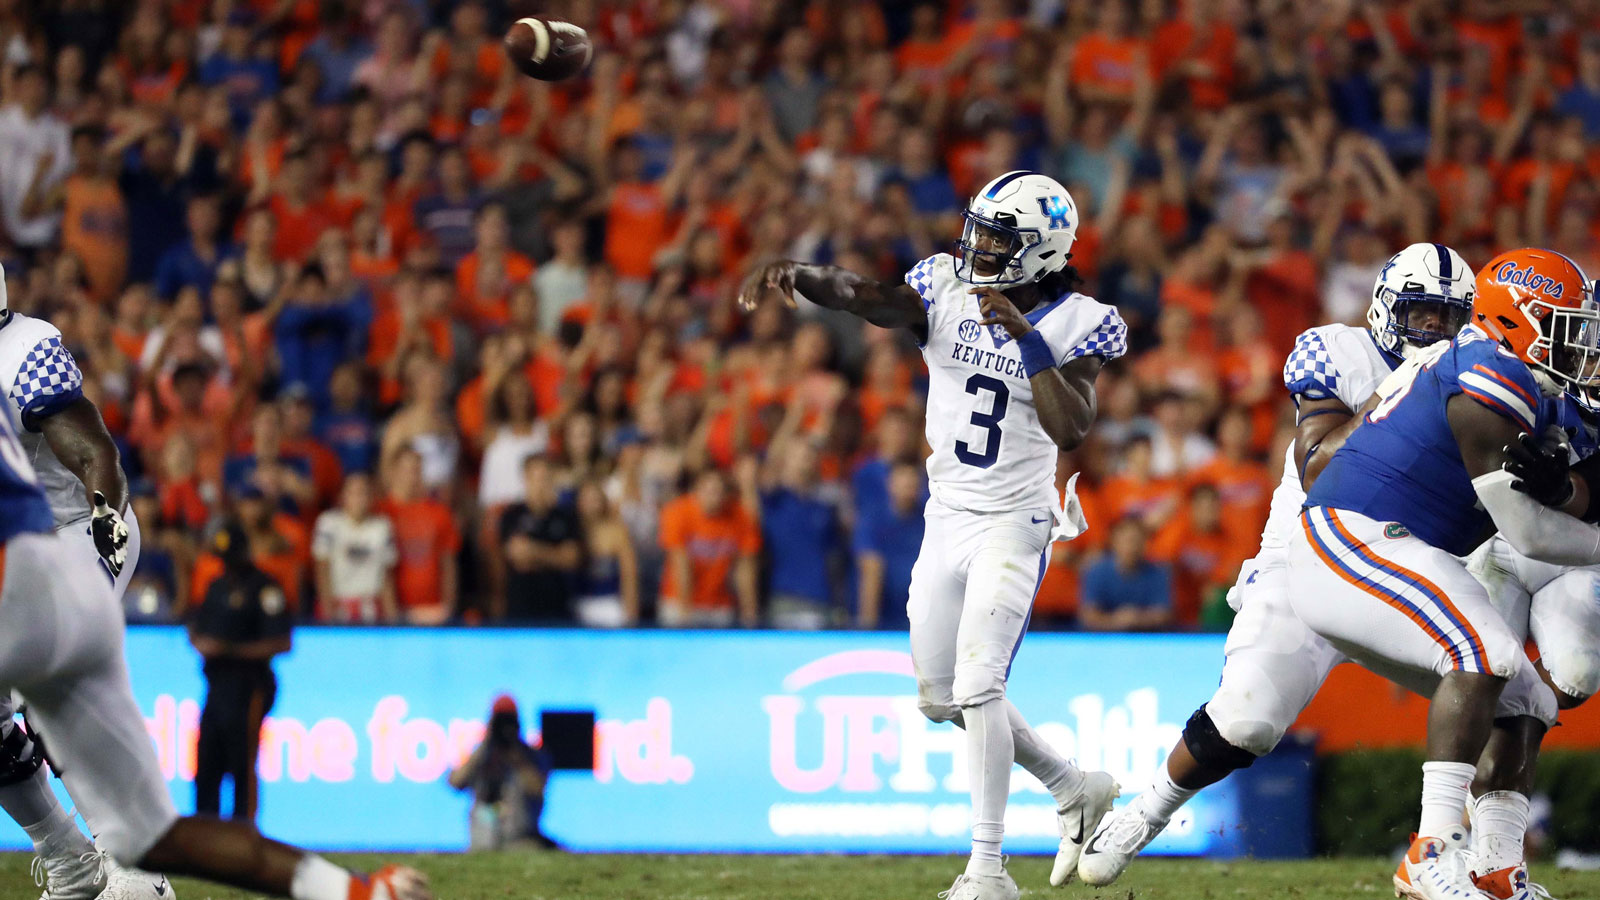 No. 25 Florida has decades-long winning streak over Kentucky snapped in shocking home loss